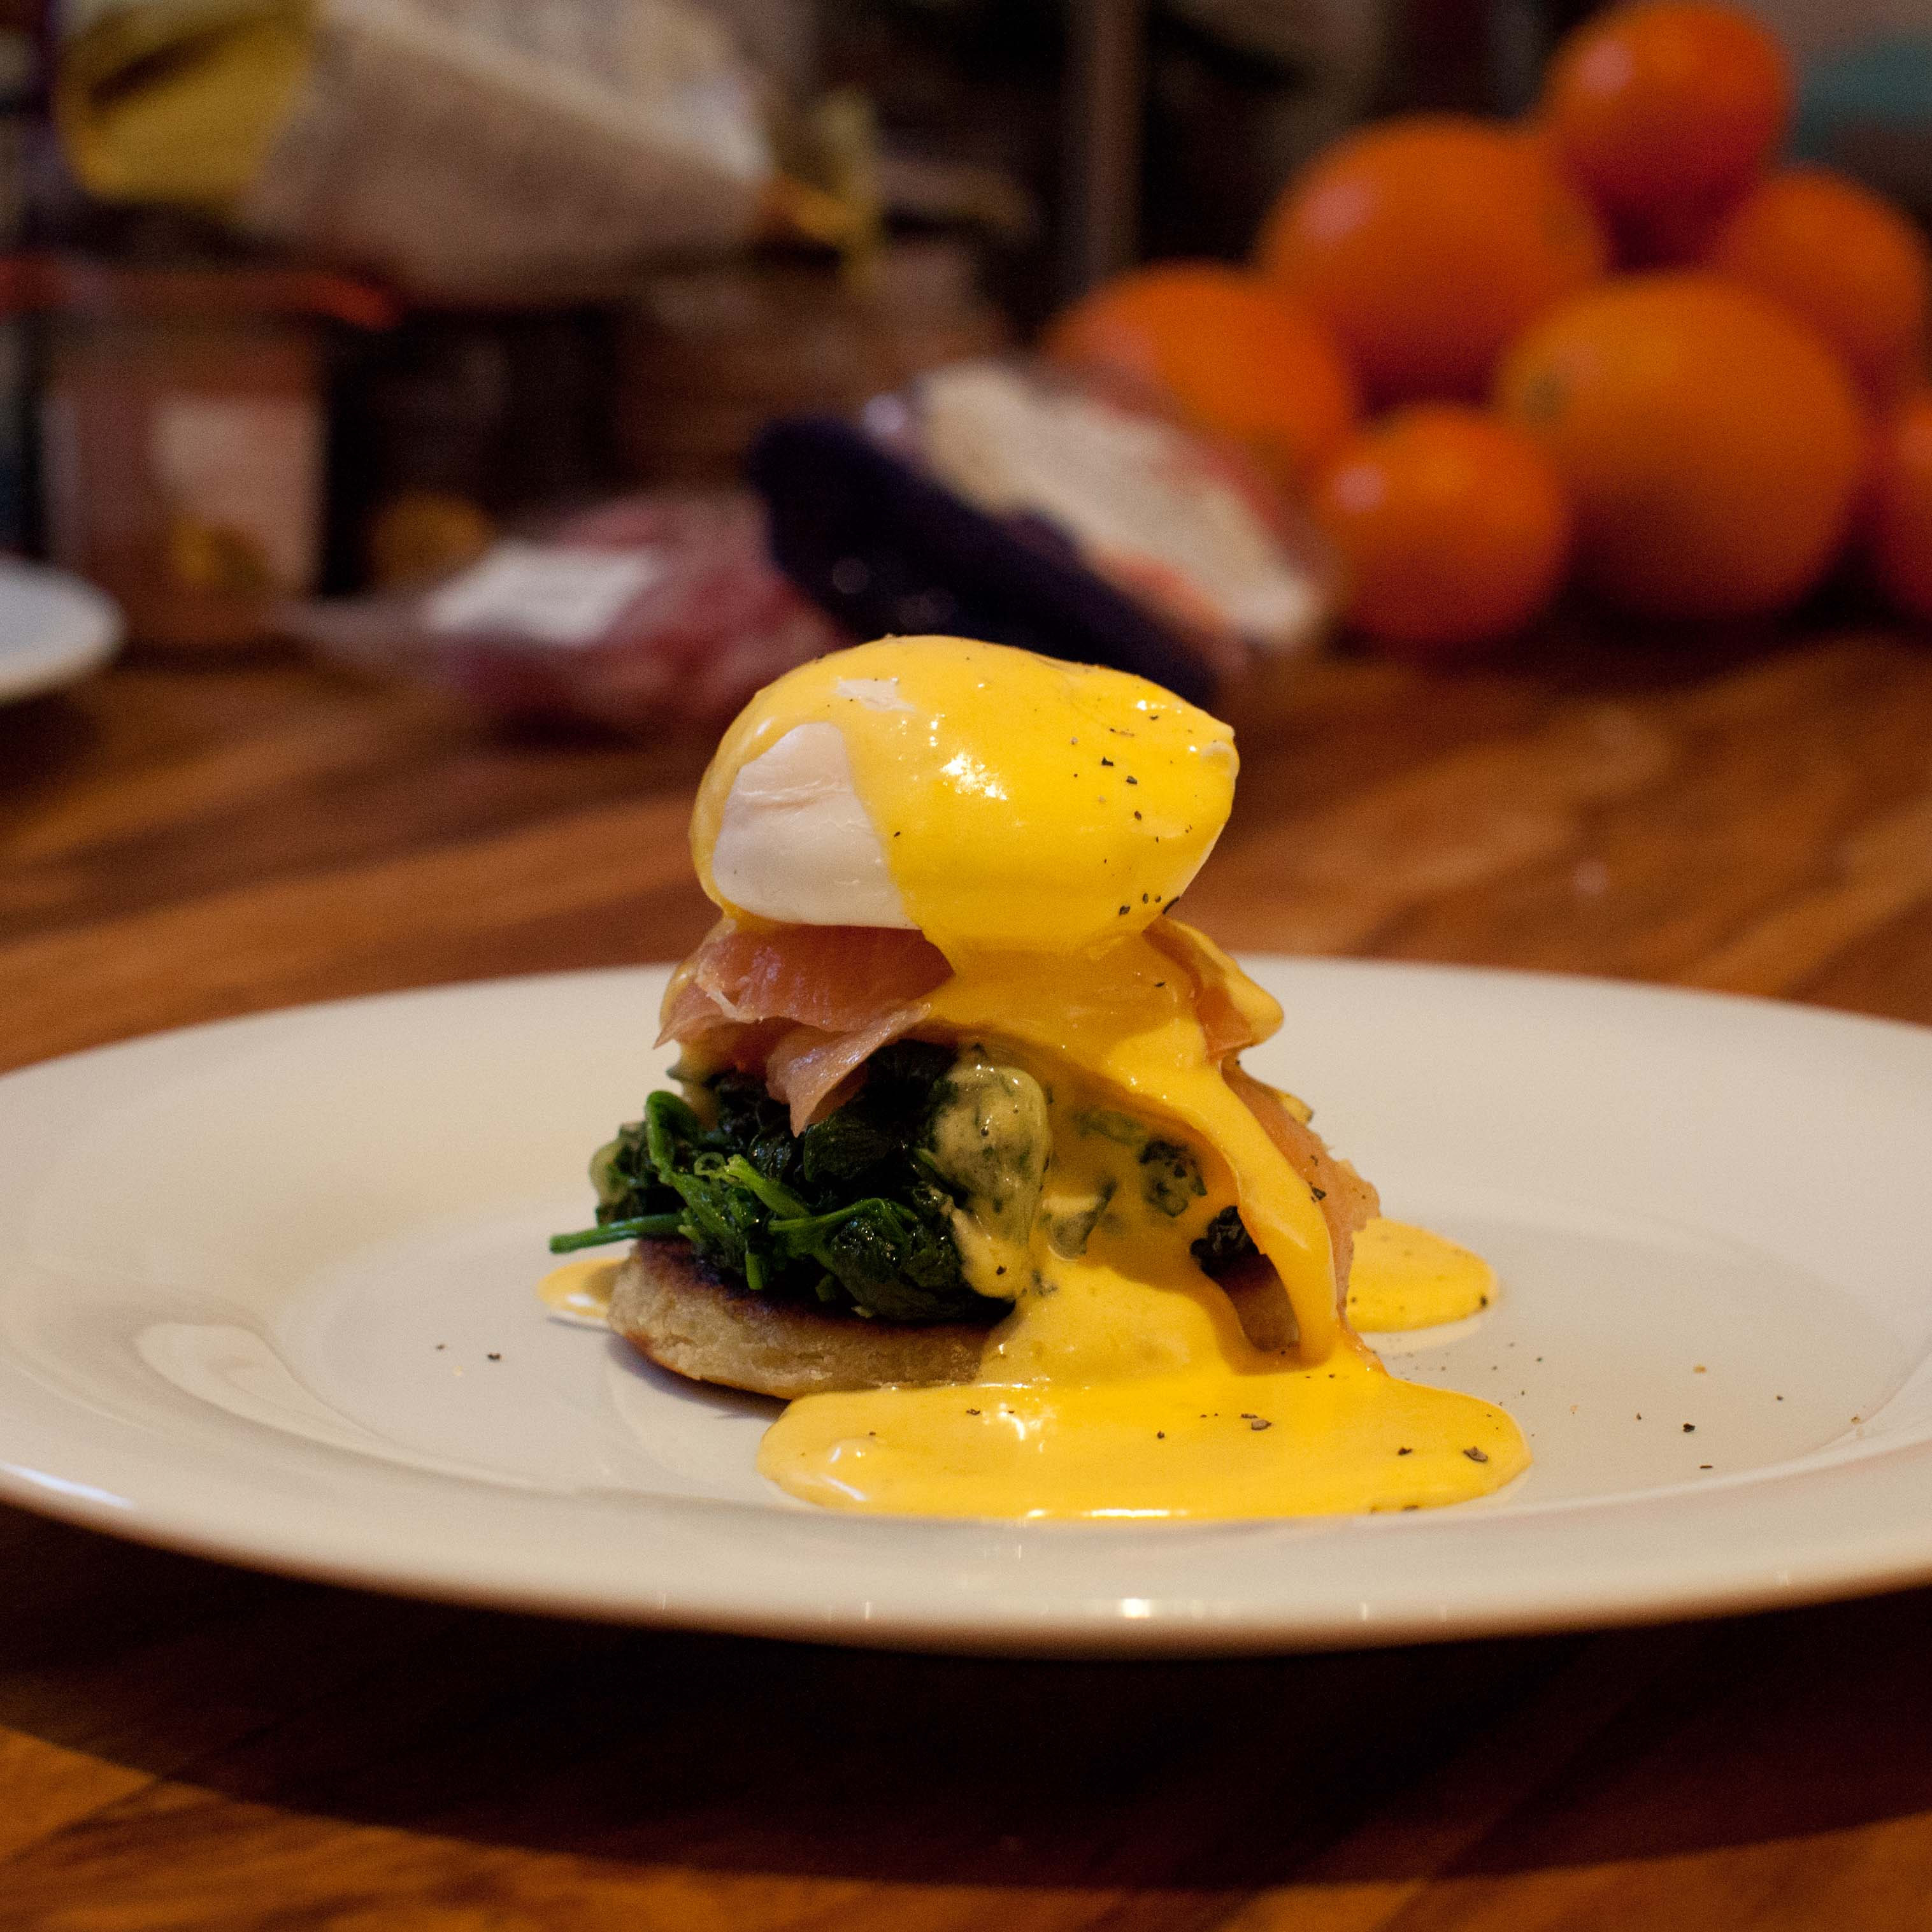 Chef John's Easy One-Bowl Hollandaise Sauce aidan hart